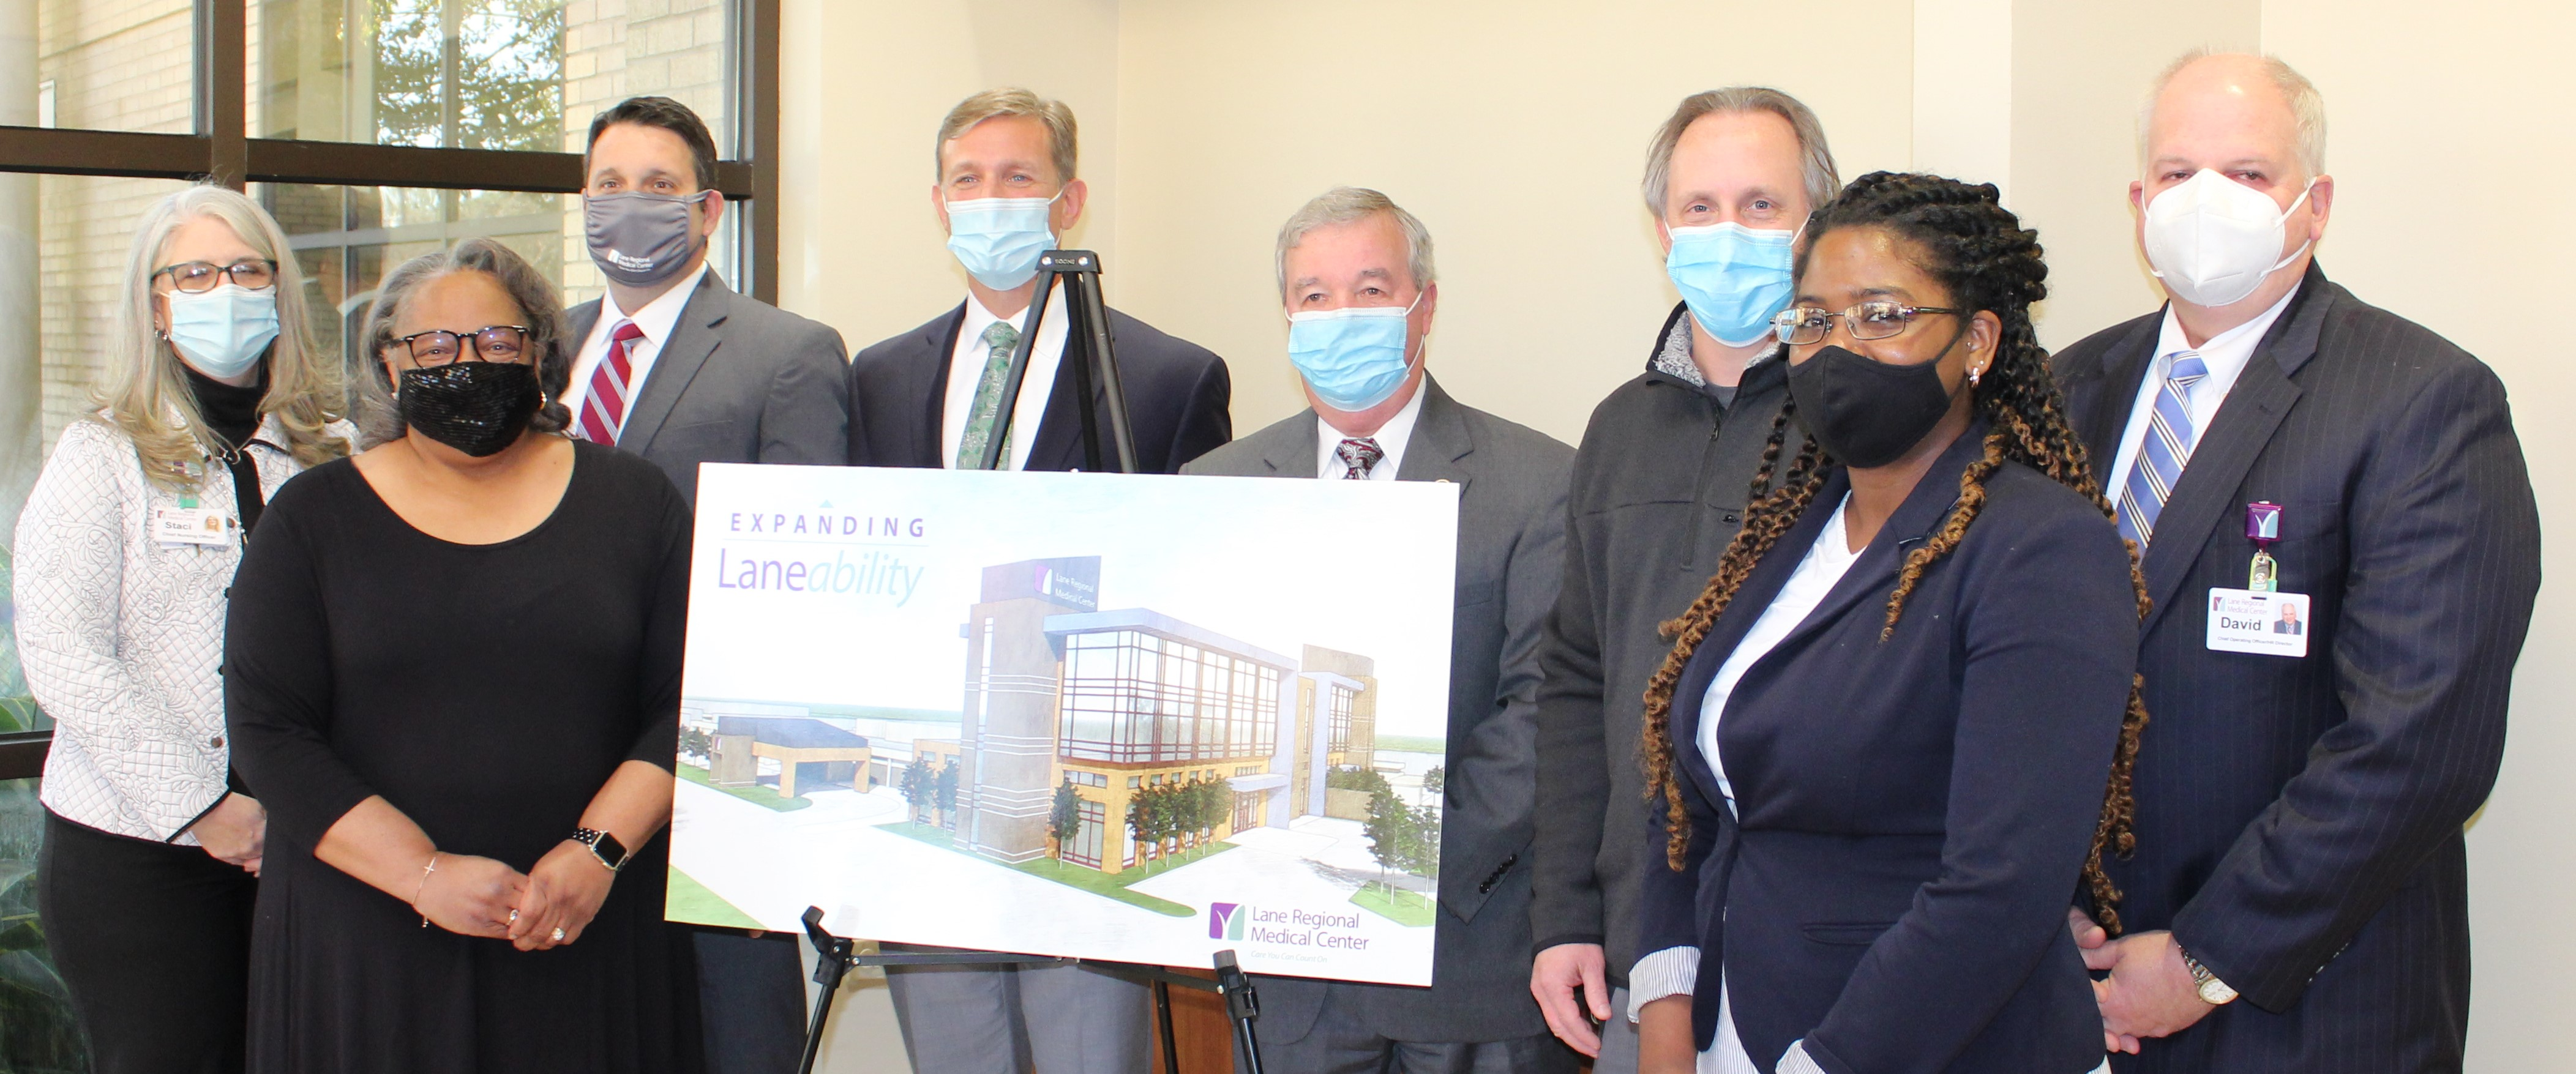 Lane Announces Hospital Expansion Project